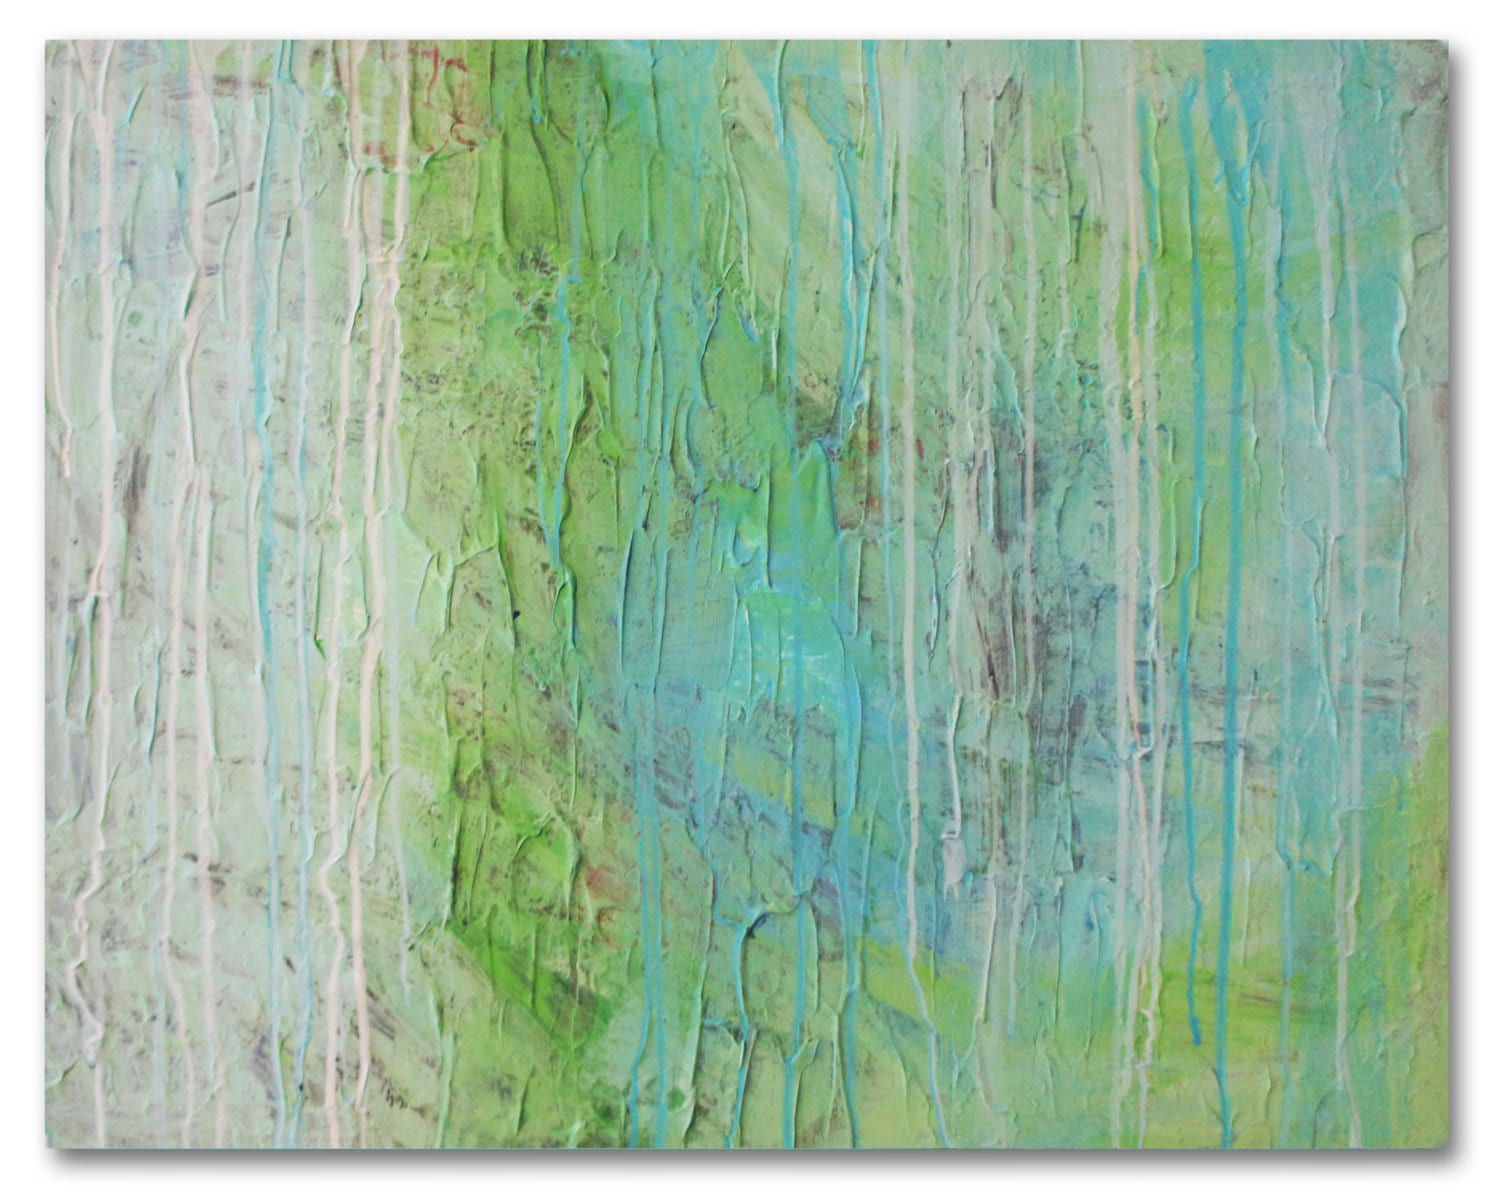 large modern abstract blue and green painting, 30 x 24 inches, thick black edges - pinkvhurgoe